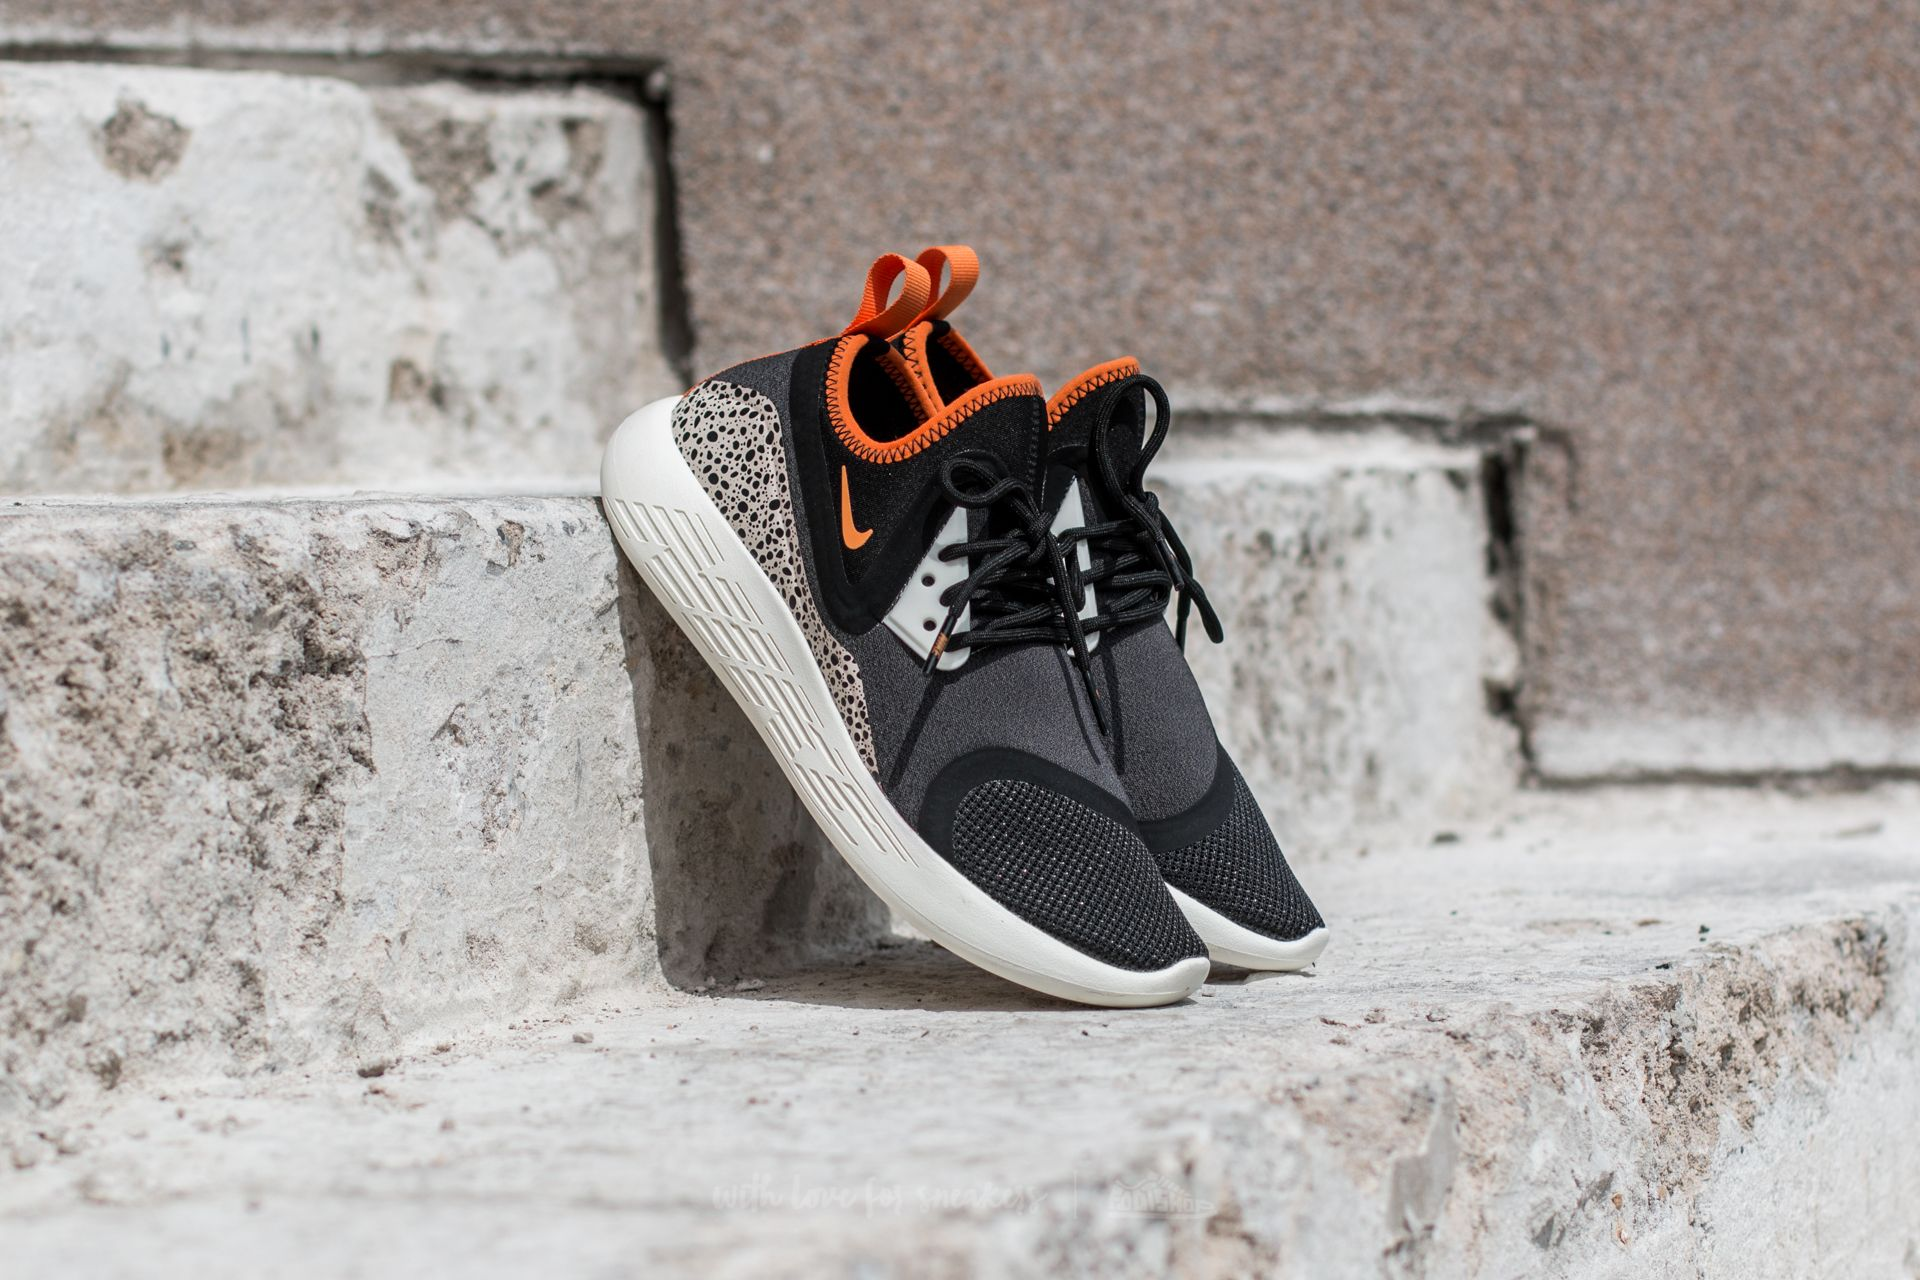 Nike Wmns Lunarcharge BN